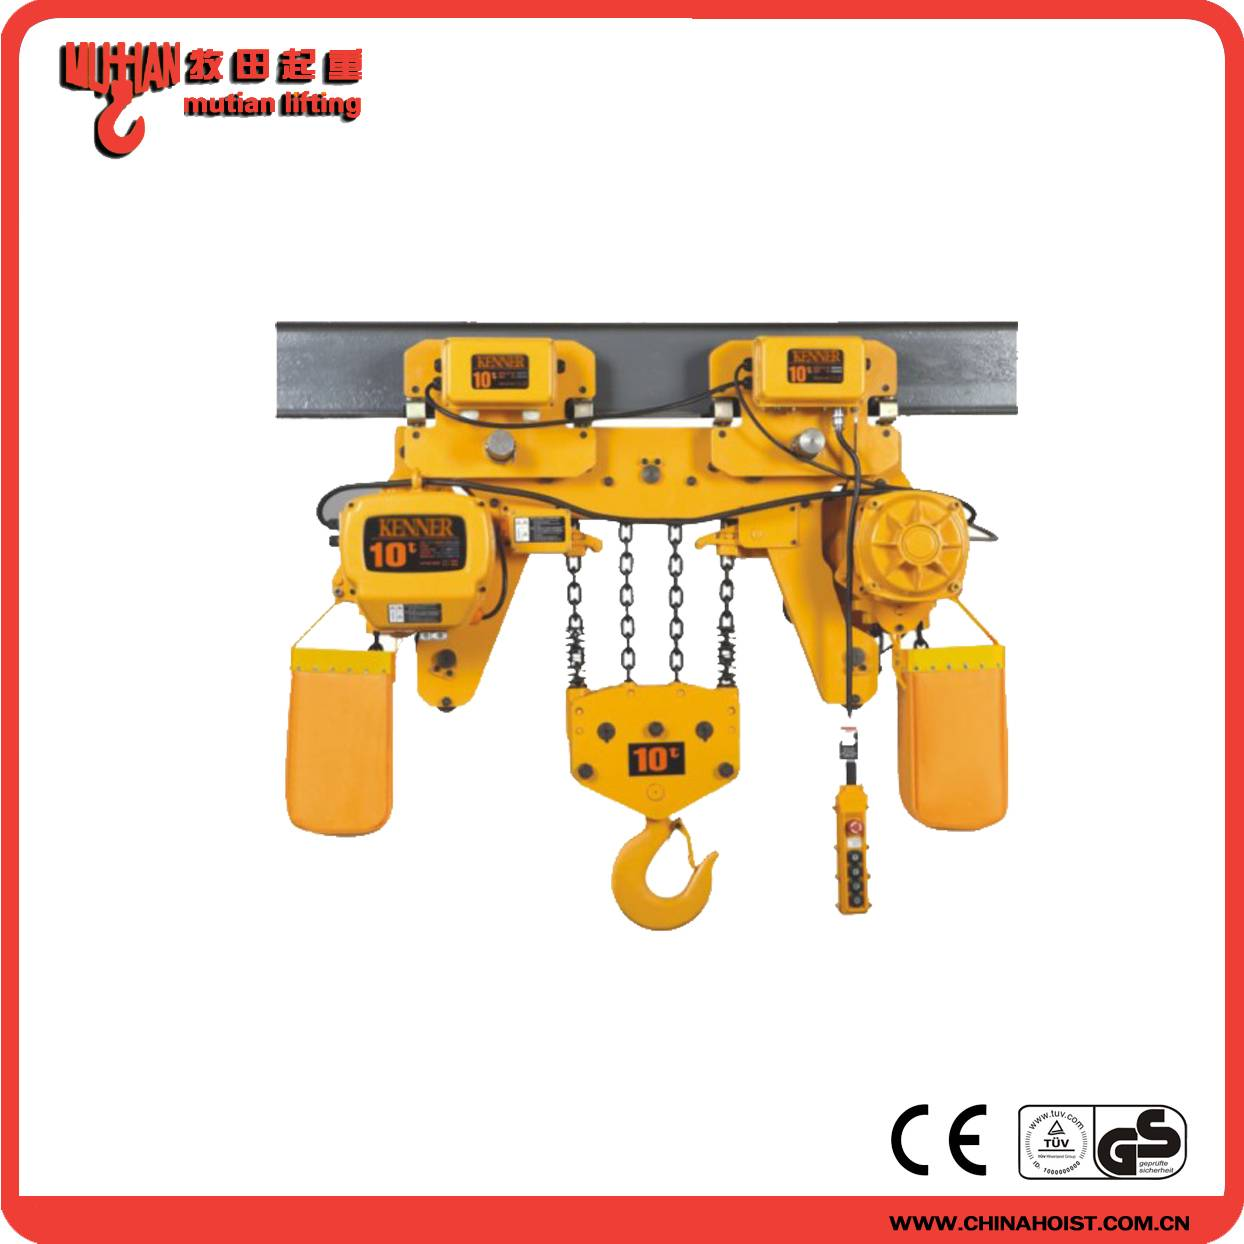 Good Quality HHSY 10 ton big duty Crane Lifting Electric Chain Hoist